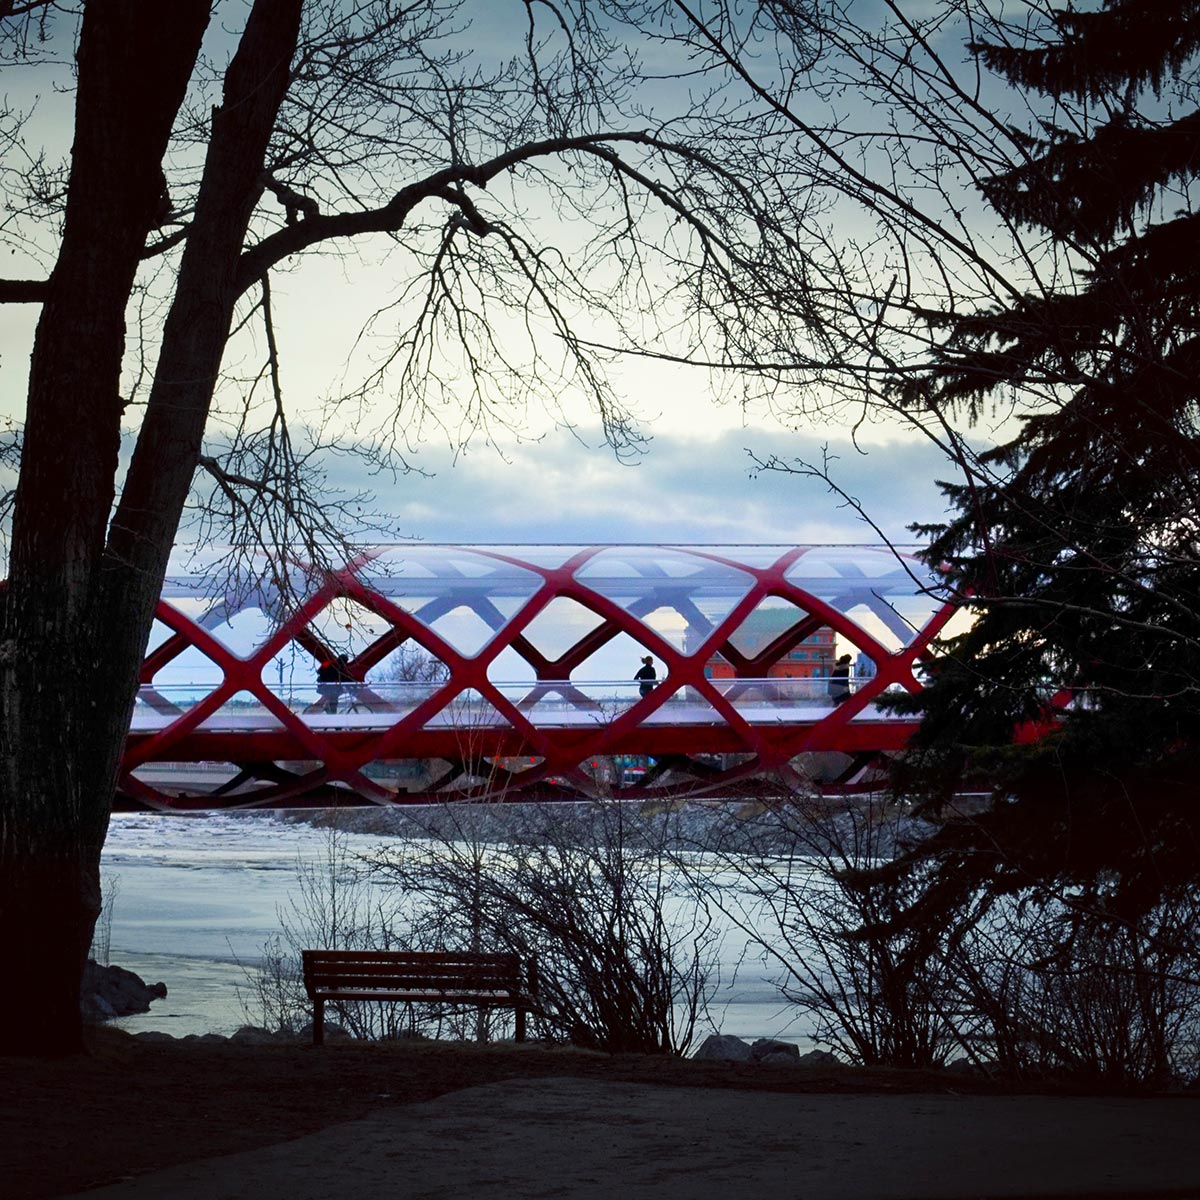 The Peace Bridge in Calgary looking from Prince's Island Park